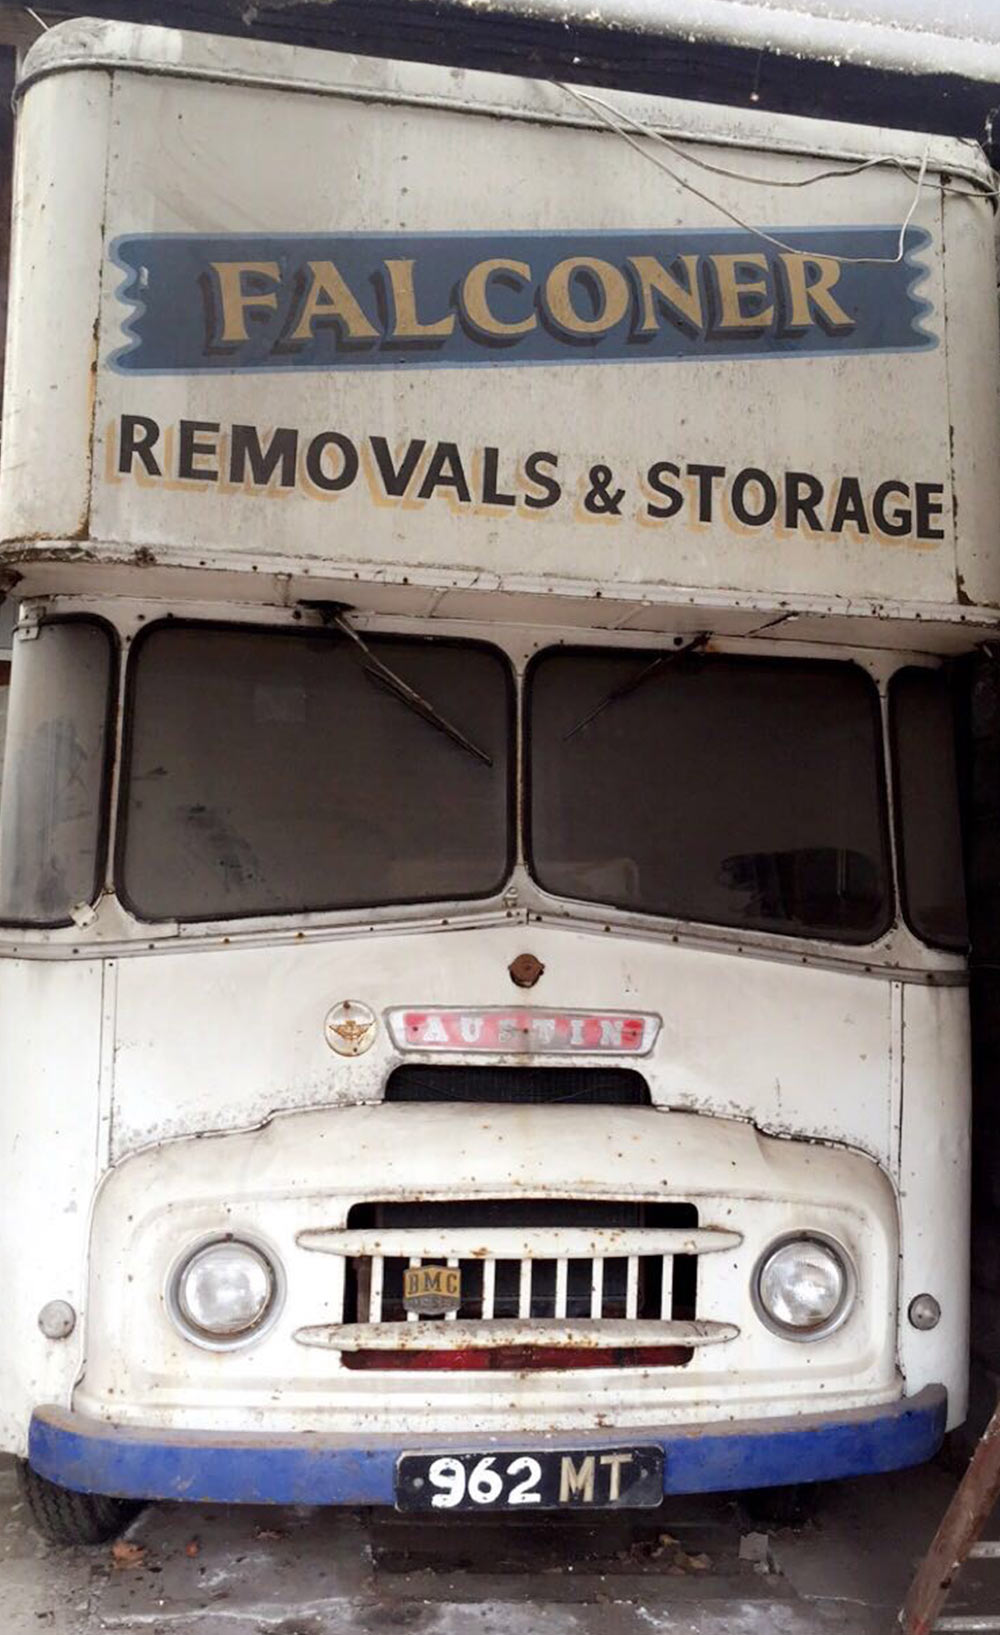 old austin falconer removals lorry history